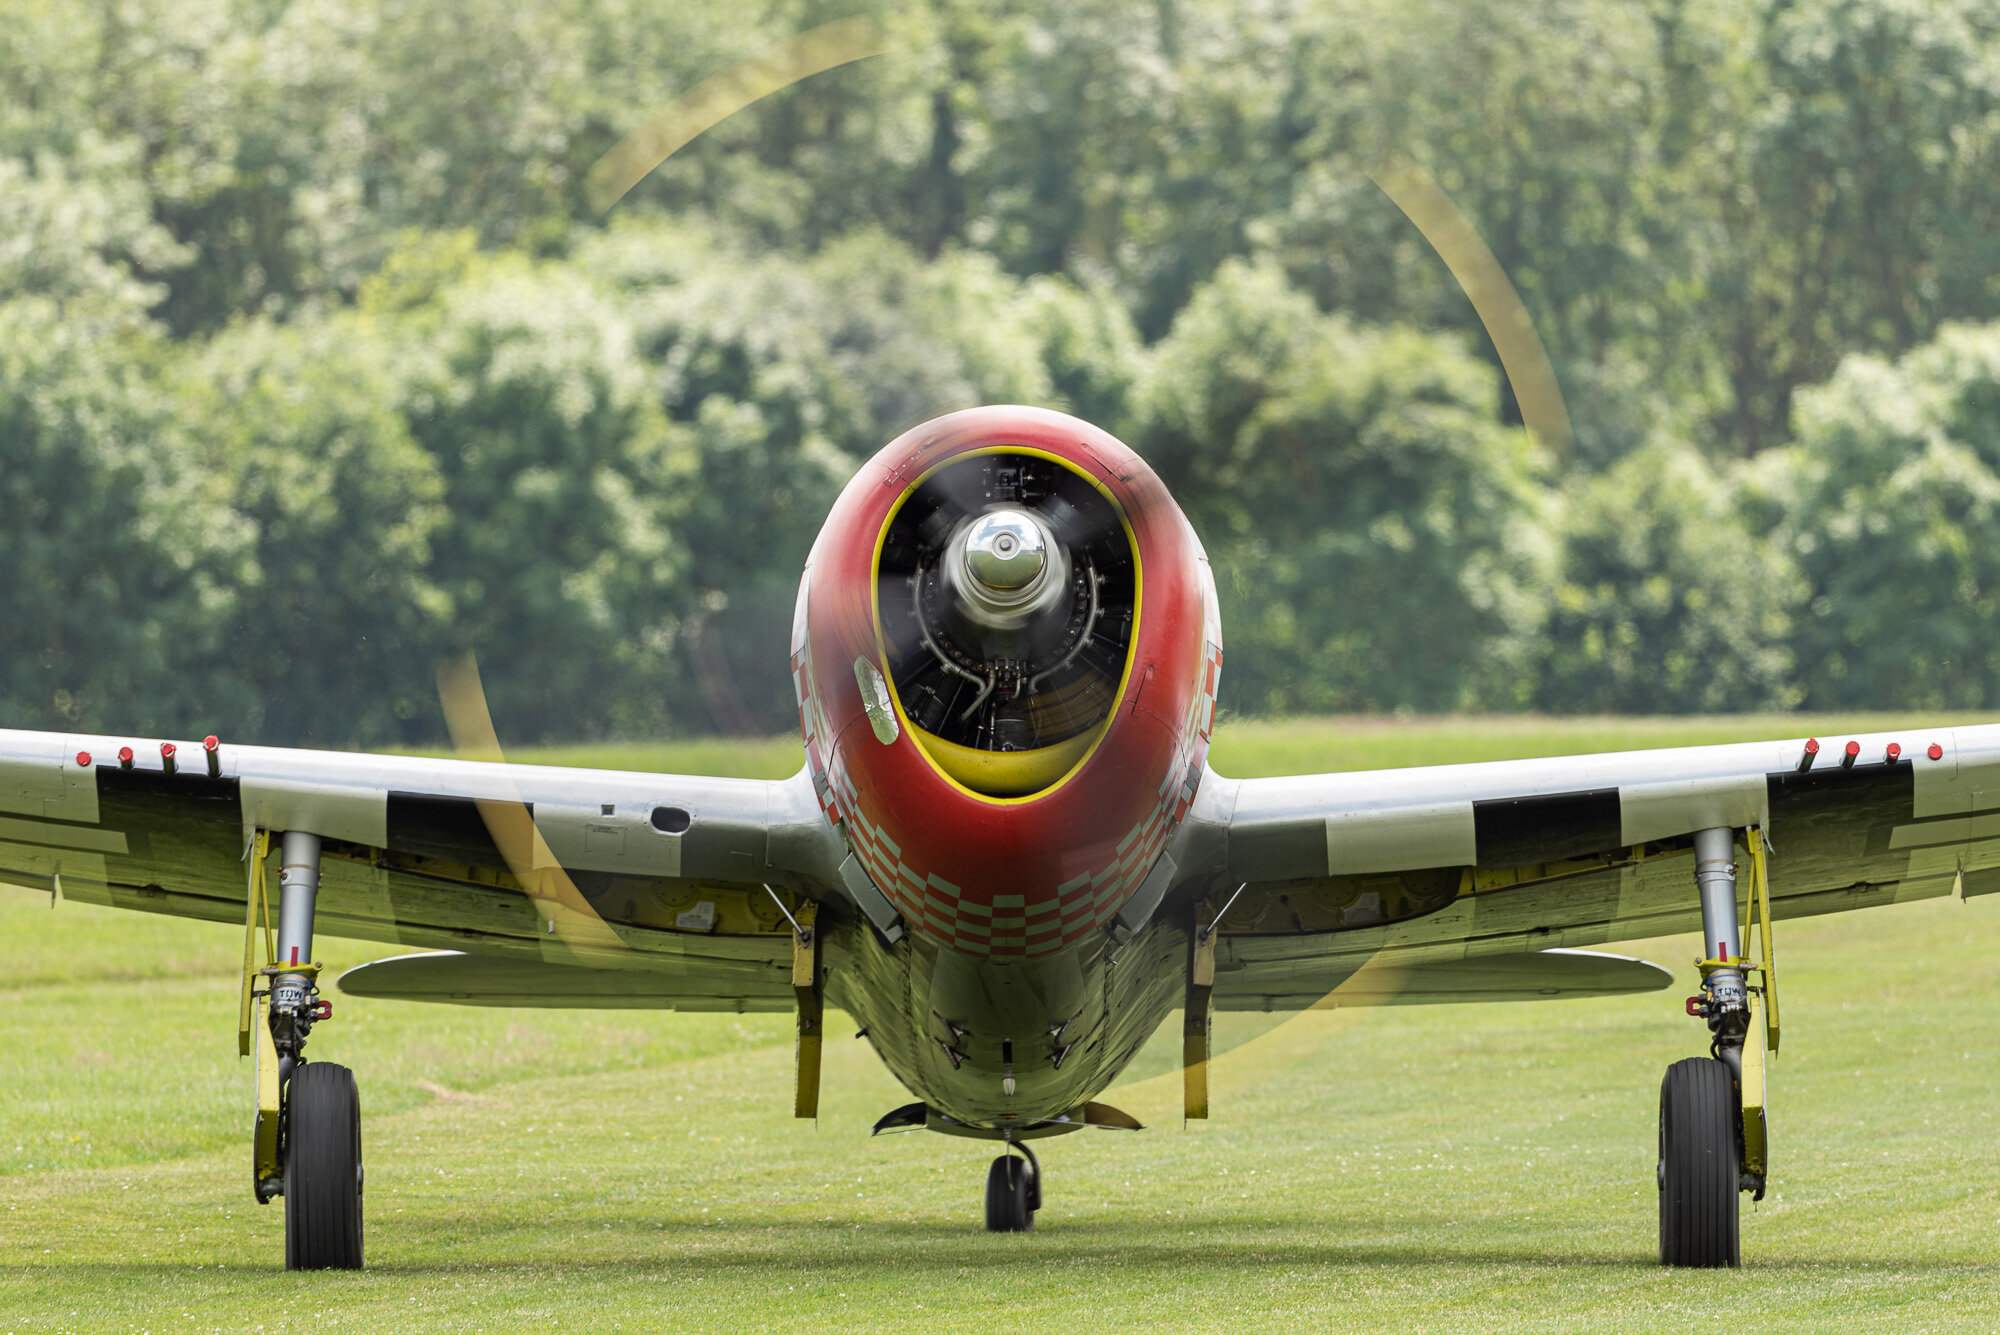 The mighty Jug taxying. Republic P-47D  on the grass runway at Old Warden. Nikon D810, 500mm PF at f/6.3, 1/80 sec, ISO 64.  The VR works well - I found no problem getting sharp pictures at 1/80 to preserve the rotation of the prop. The trees behind give a complicated bokeh, but I don't find this at all distracting.